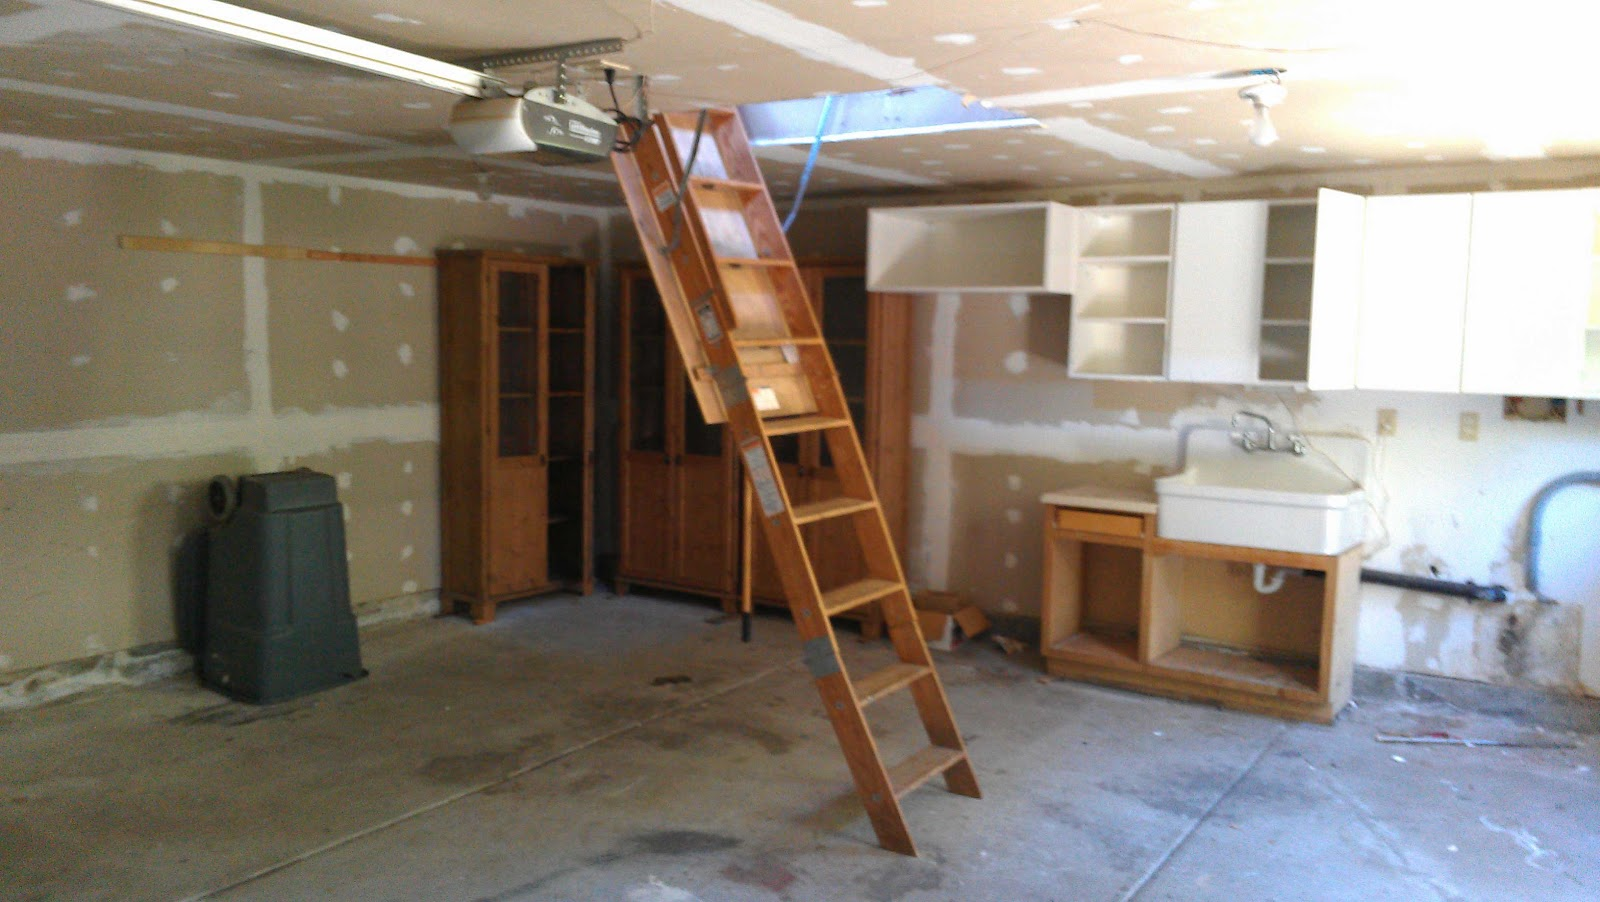 Garage With Ladder To Storage Loft